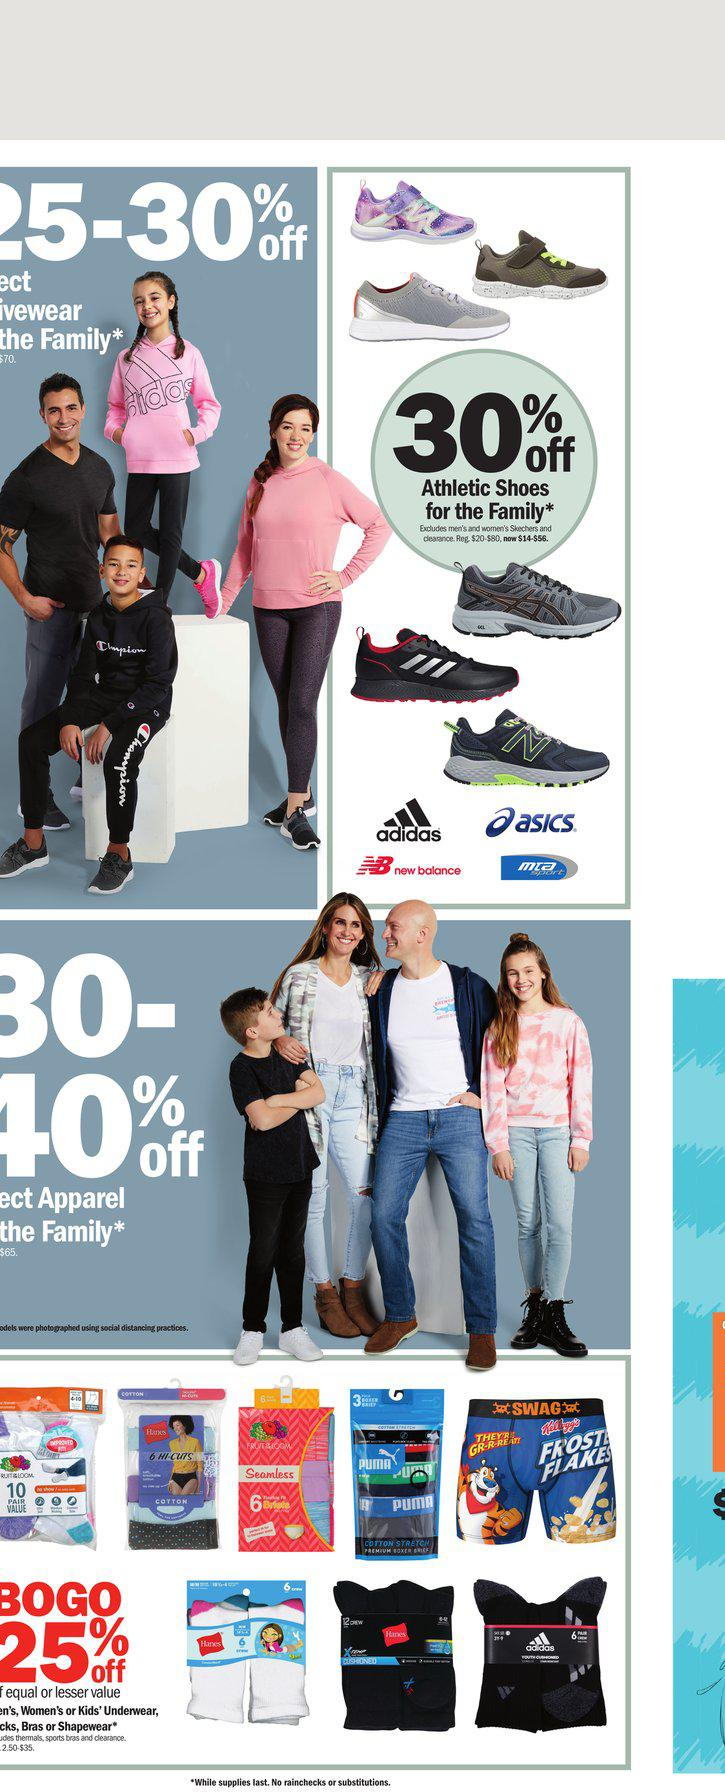 21.02.2021 Meijer ad 22. page